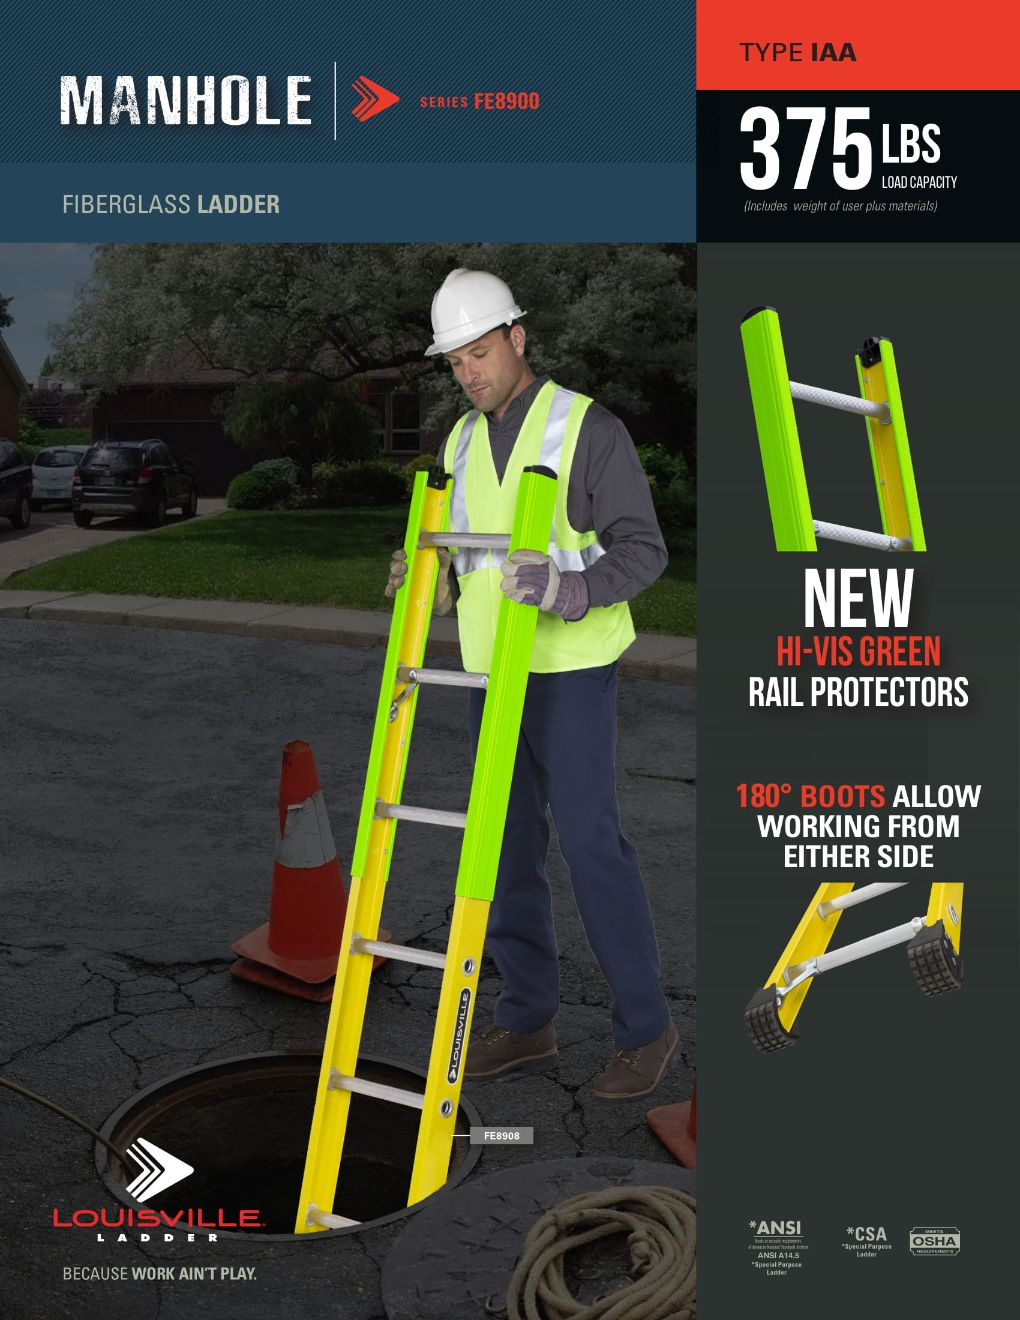 FE8900 Manhole Ladder Flyer and Spec Sheet Marketing Material Image